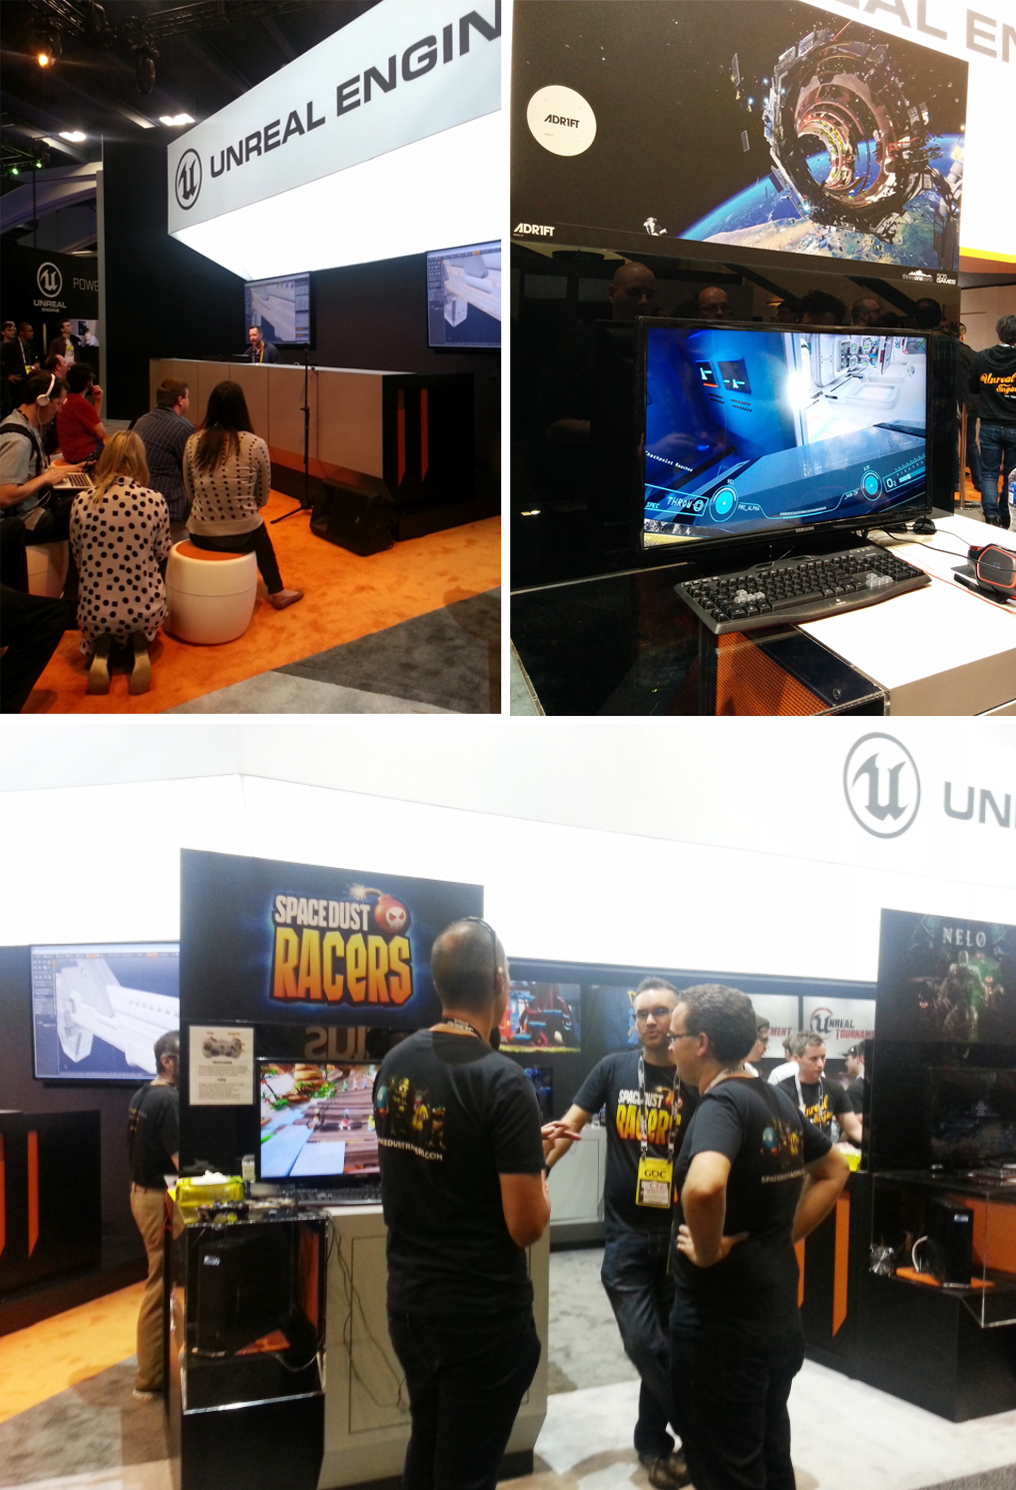 Unreal Engine booth at GDC 2015